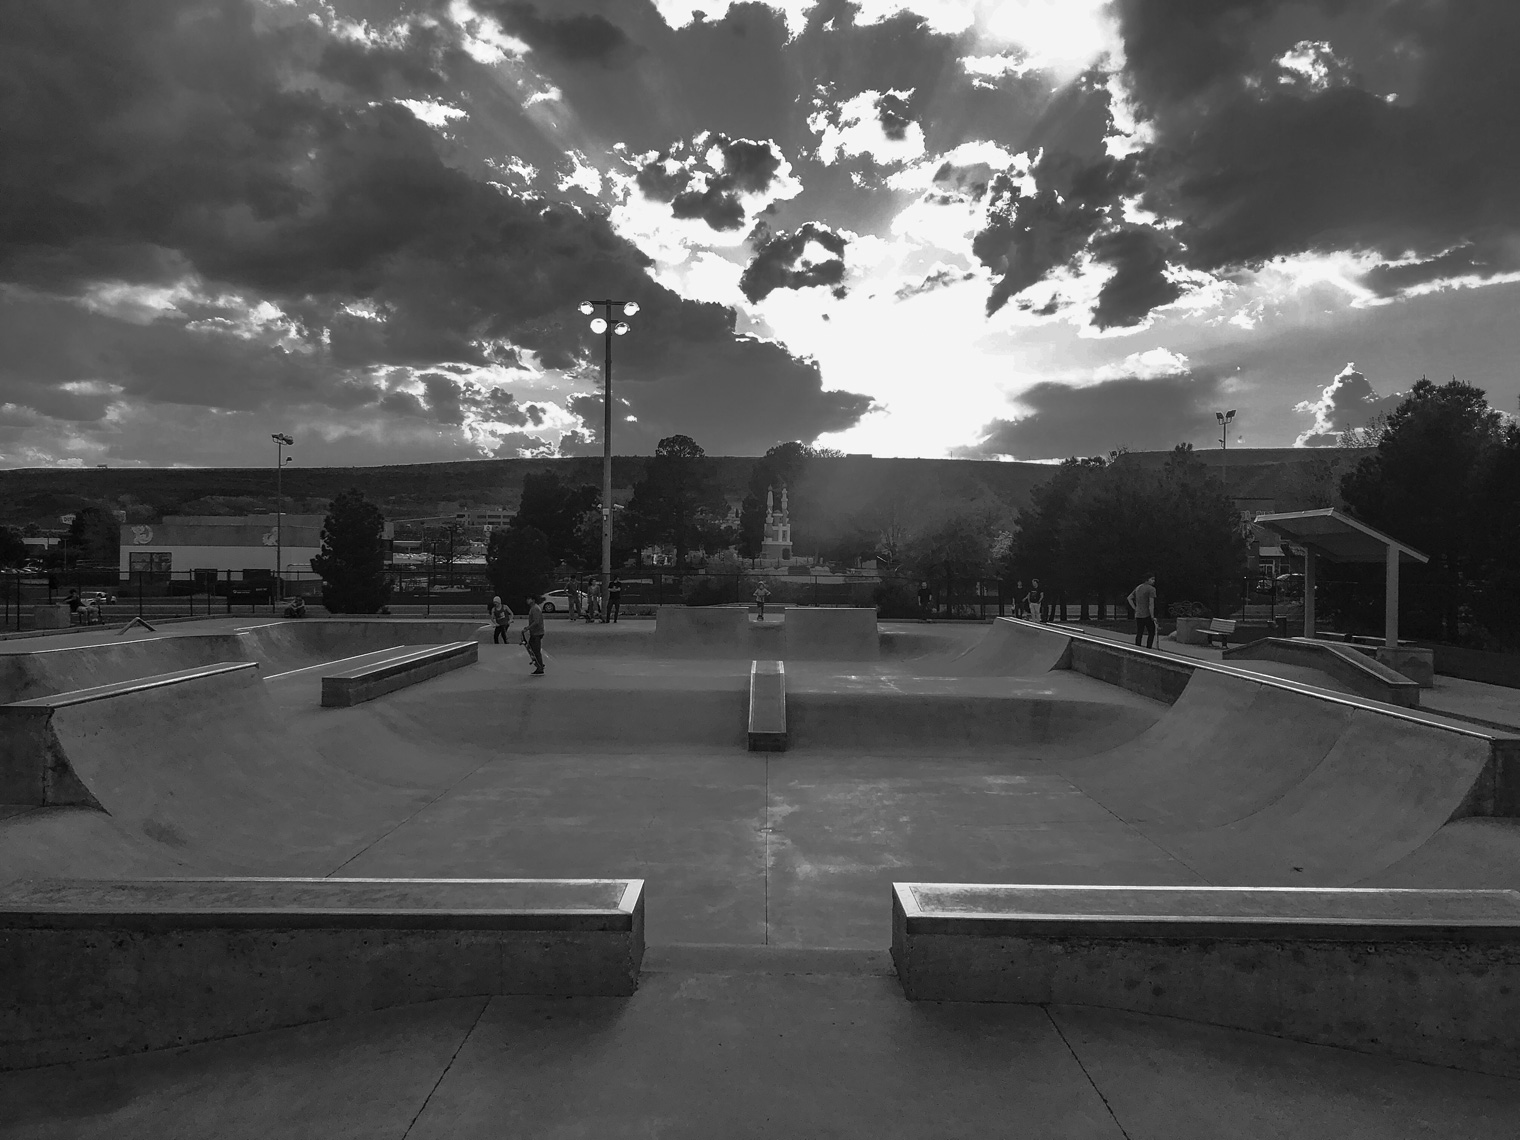 RoadTripping_SkateparkProject_Park26_Town_Retouched_Web